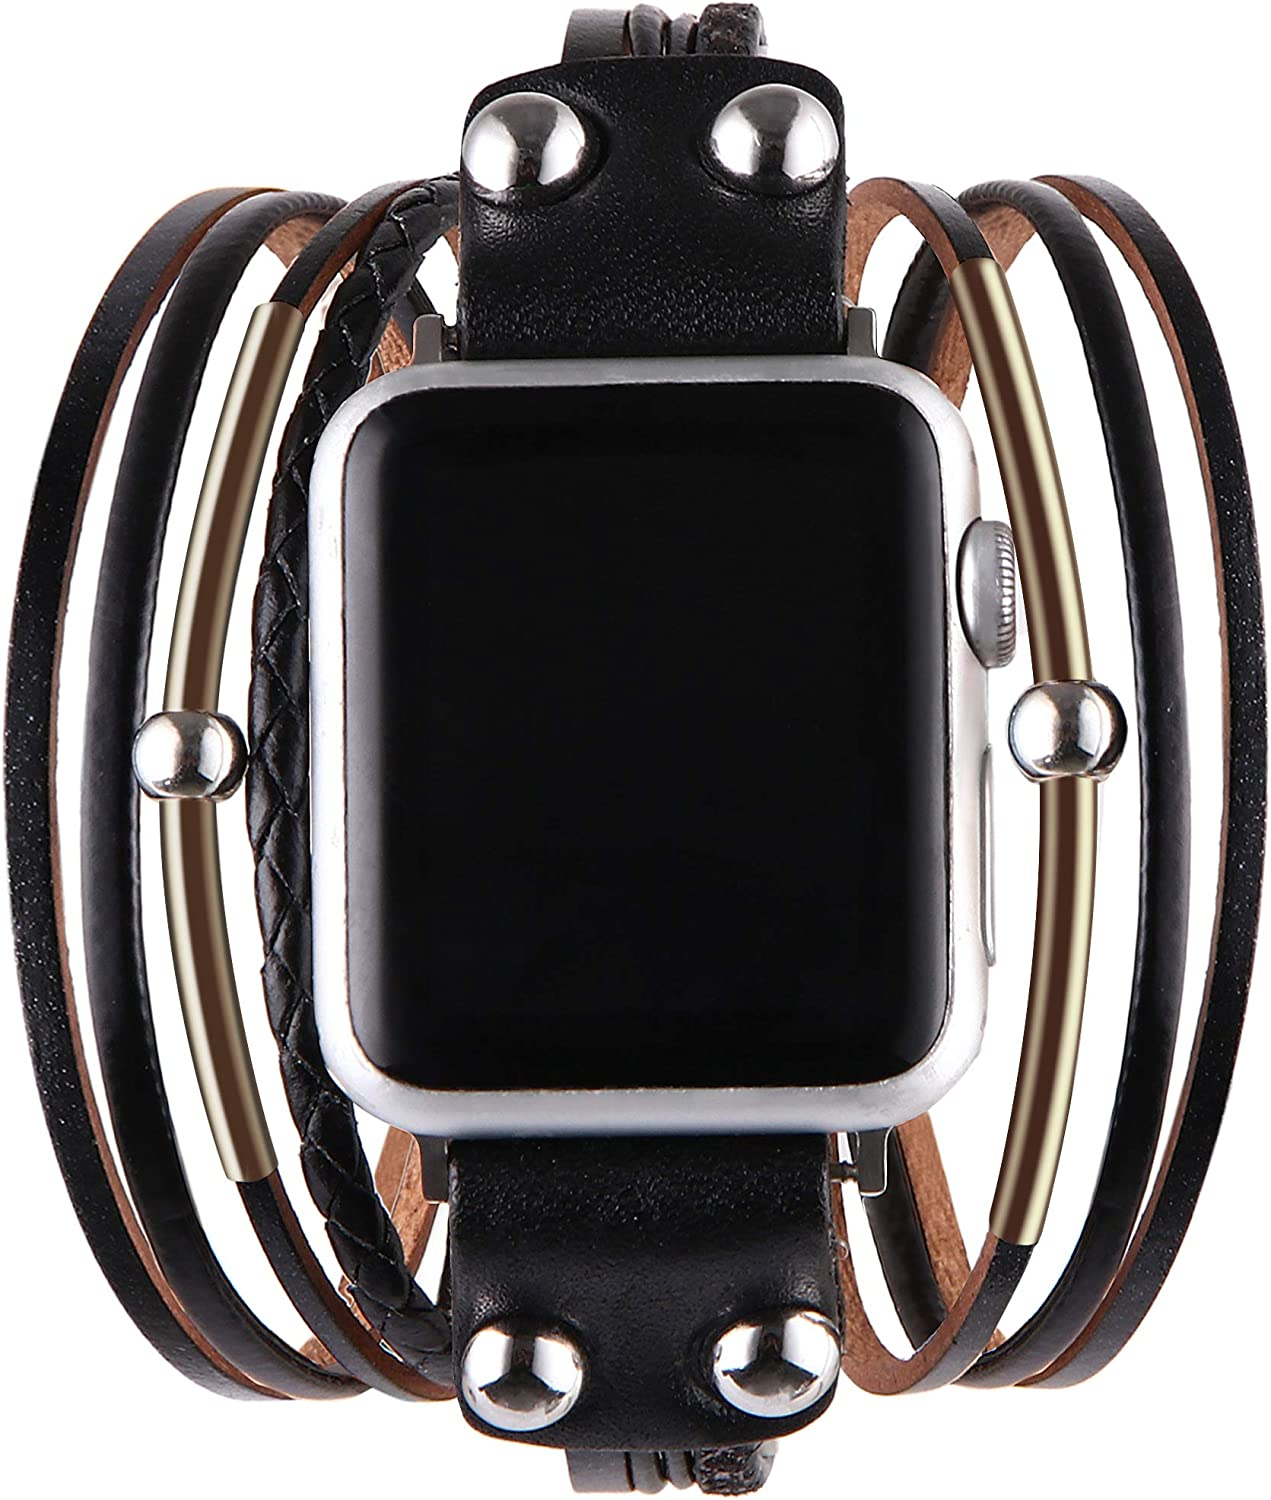 Vikoros Multi-Layer Leather Wrap Bracelet Compatible with Apple Watch SE Series 6 5 4 3 38mm 40mm 42mm 44mm for Women Mens, Boho Stylish Cuff Bangle Watch Strap for Iwatch Bands